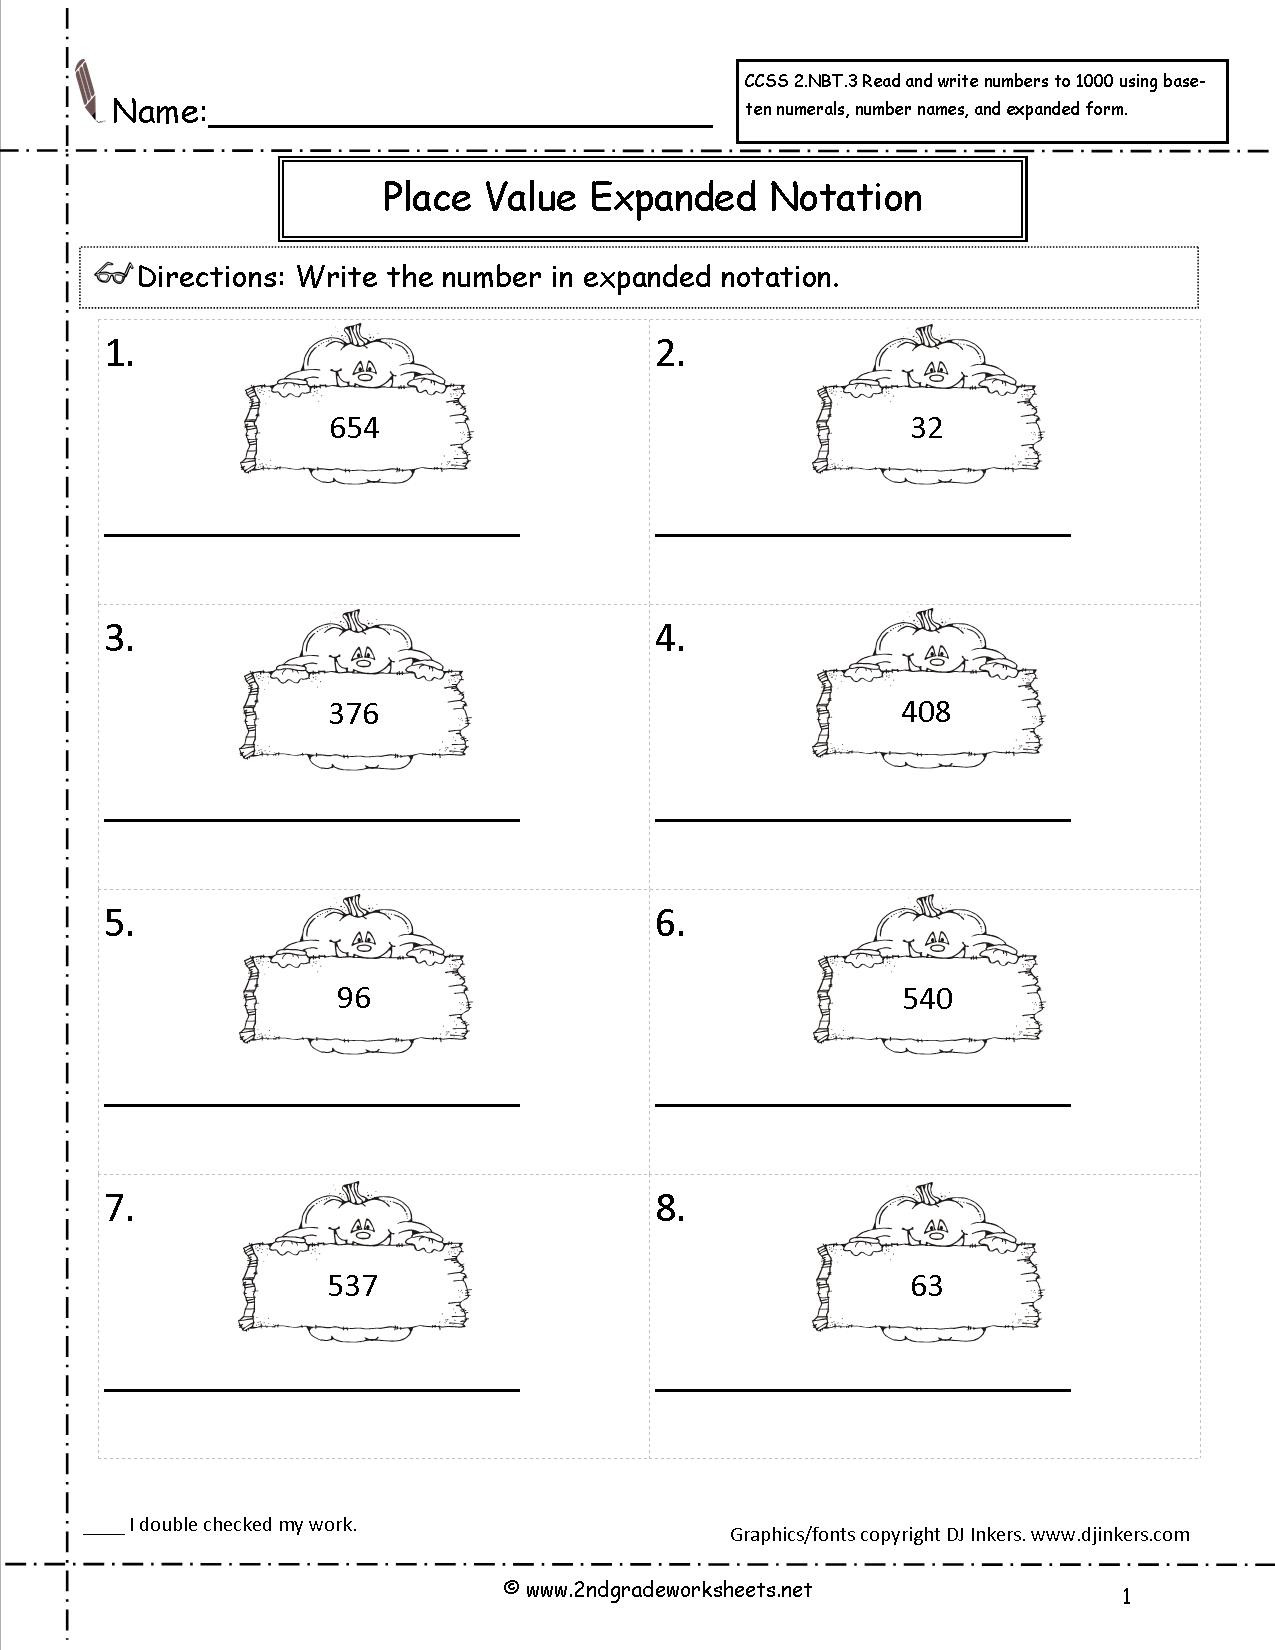 Expanded Notation Worksheets 3rd Grade Make A Math Test Al Ansar International School Math